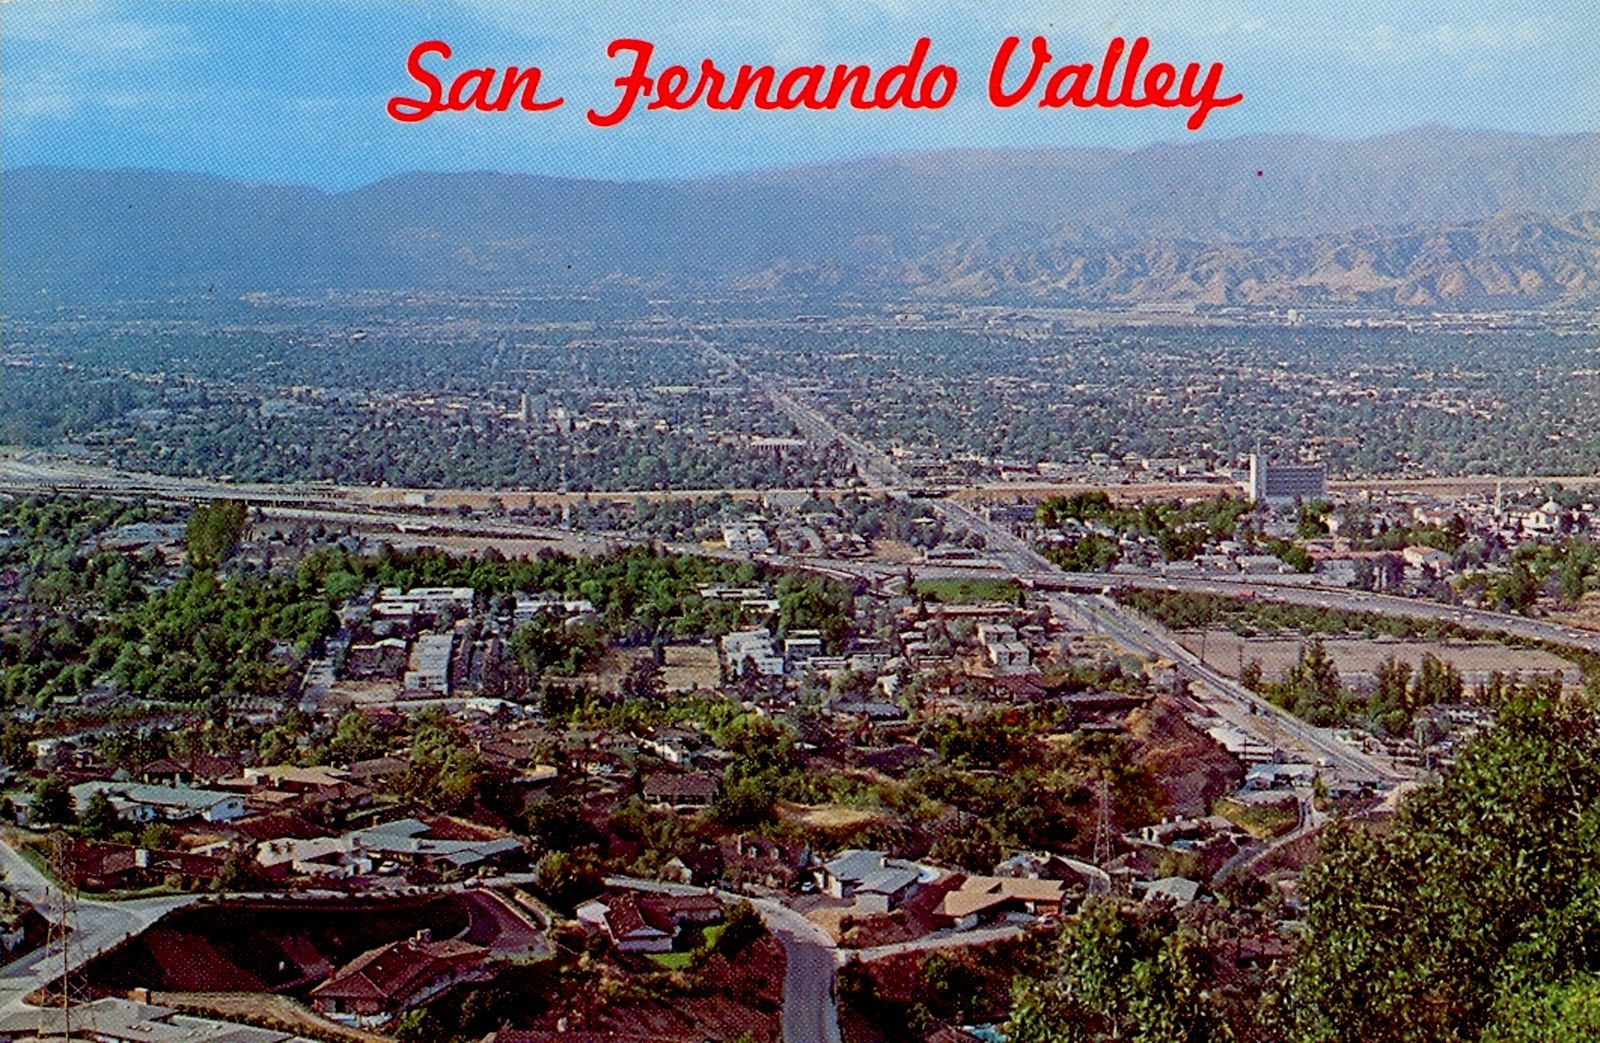 The Museum Of The San Fernando Valley Where Is This View Of The San Fernando Valley San Fernando Valley Valley California San